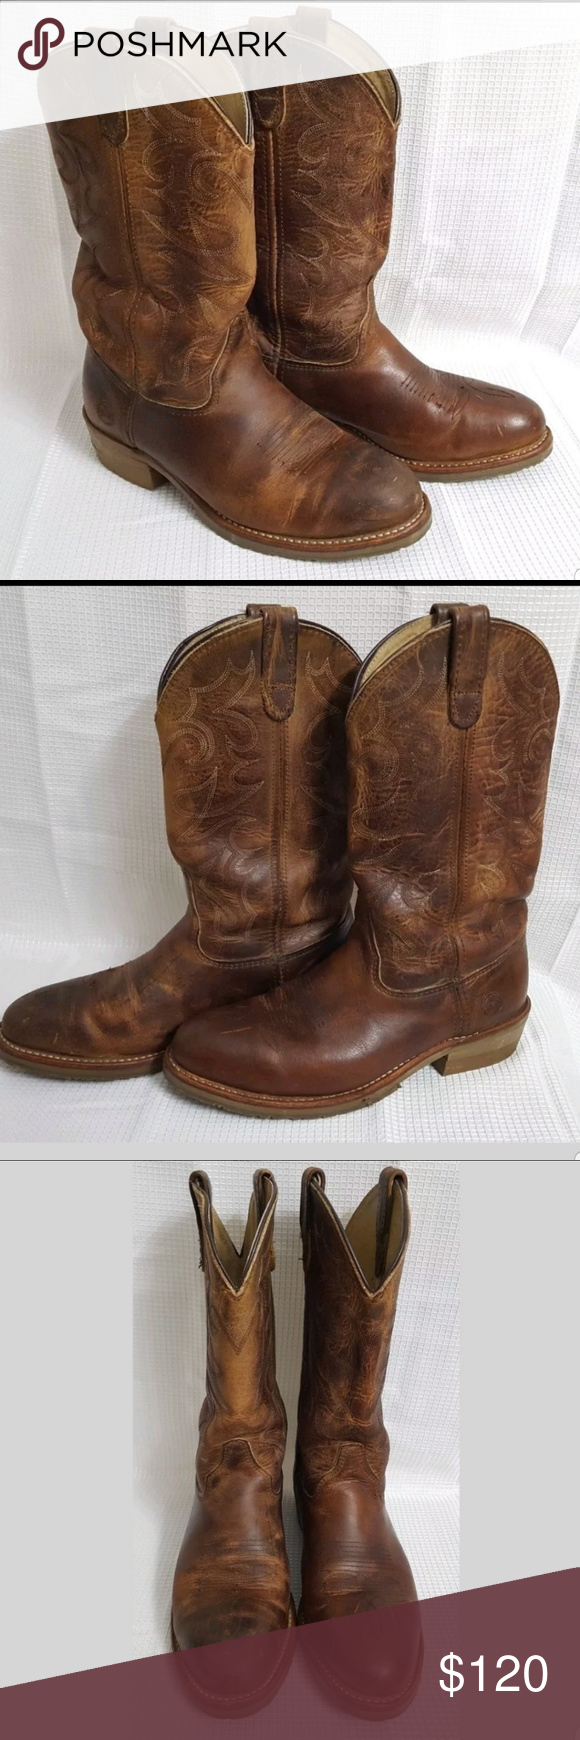 dh1592 double h boots